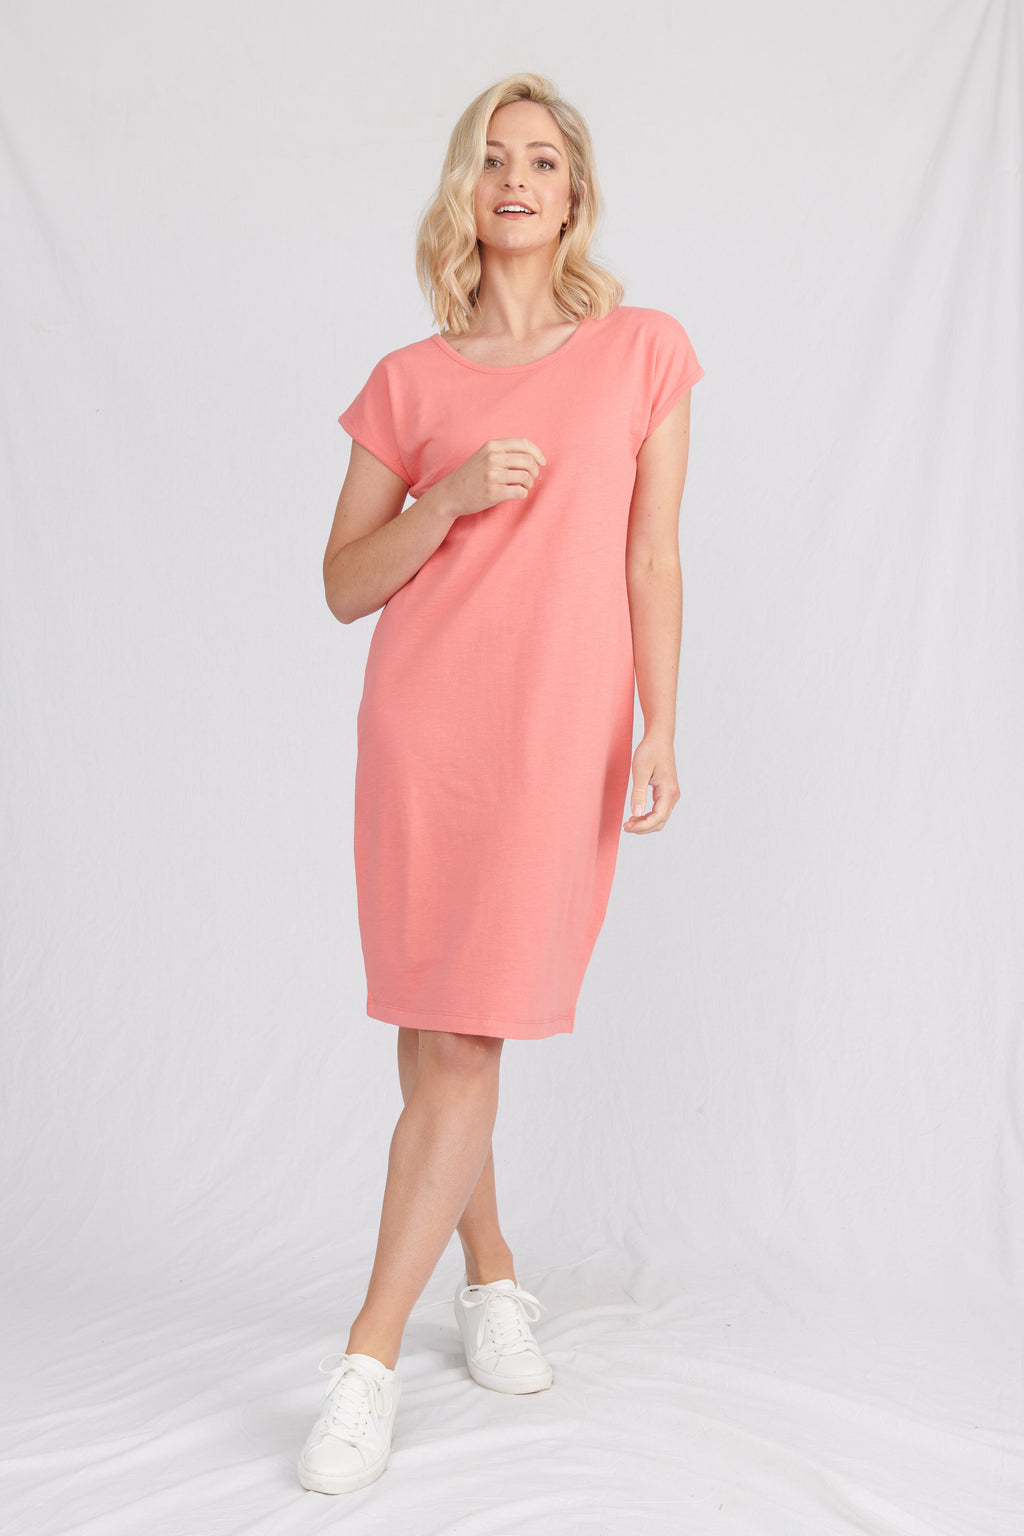 Lulu Organics Cotton Essentials - Malibu Dress Coral Flame